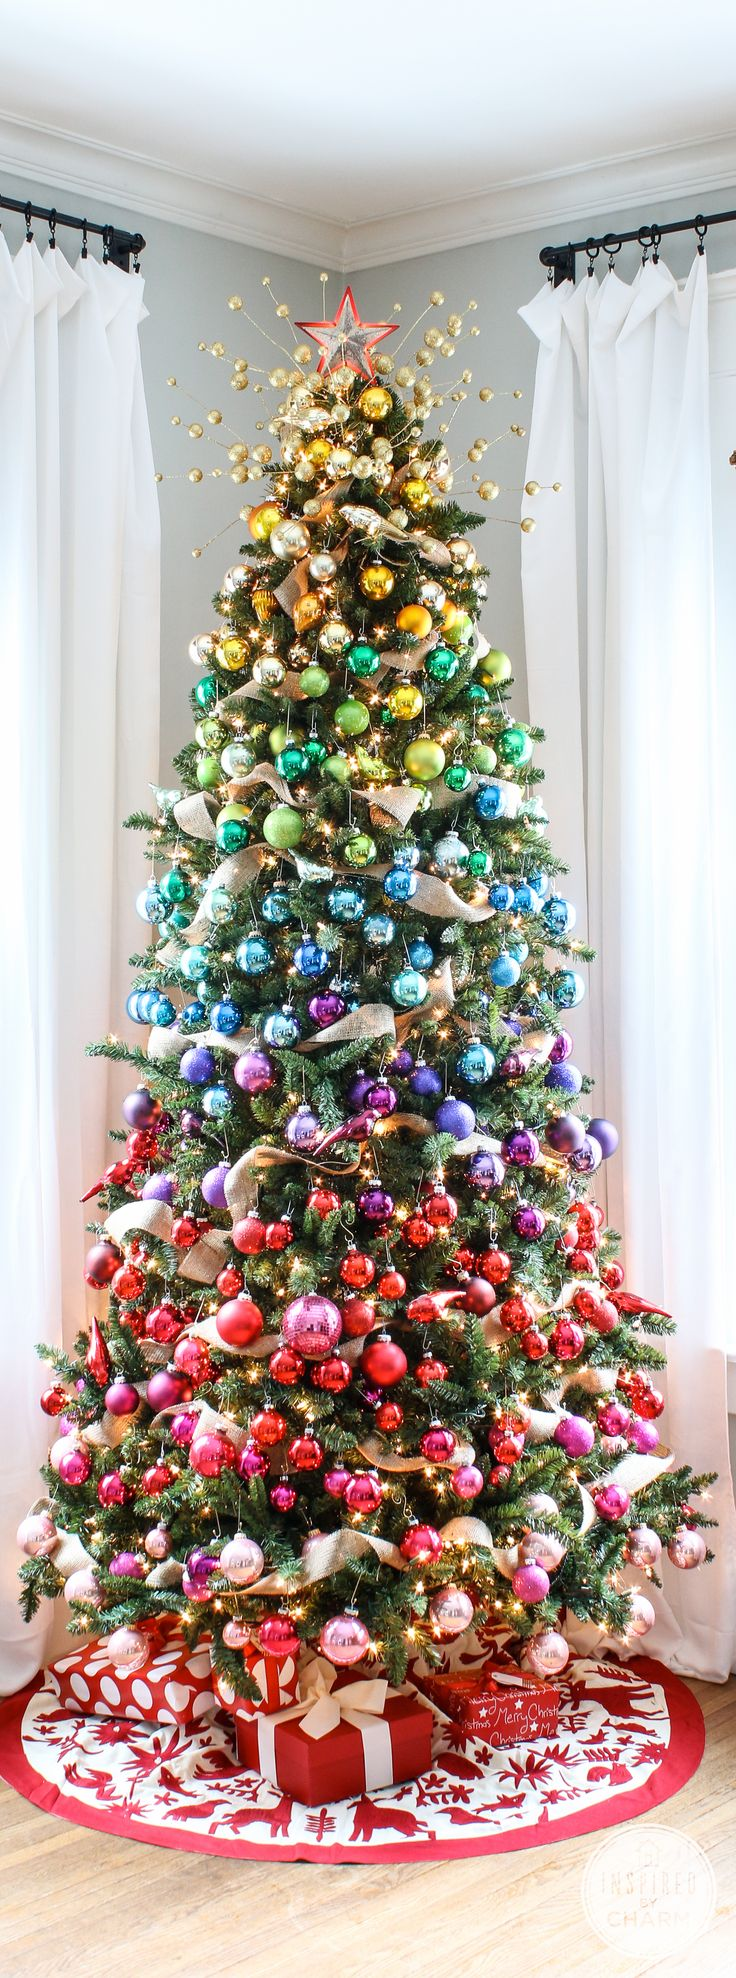 A Colorful Christmas Tree via @inspiredbycharm #gradient #christmas #tree: